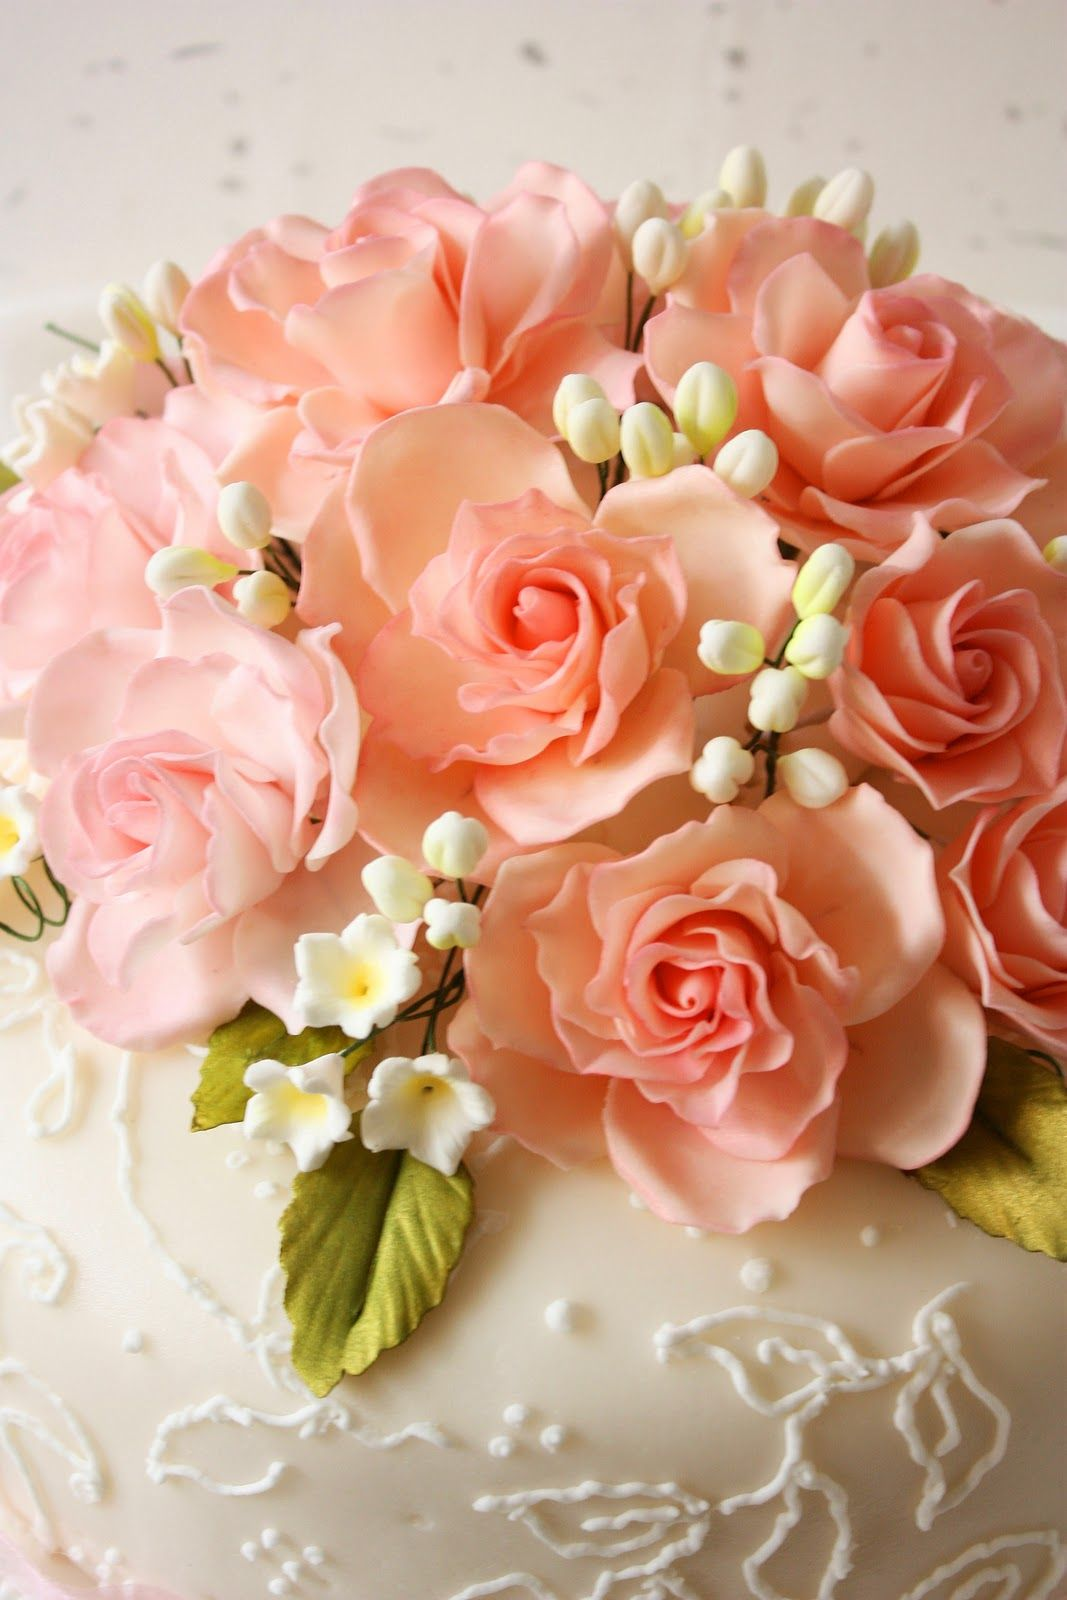 Cake Decorating Sugarpaste Flowers : How to make gum paste flowers--these roses are to die for ...